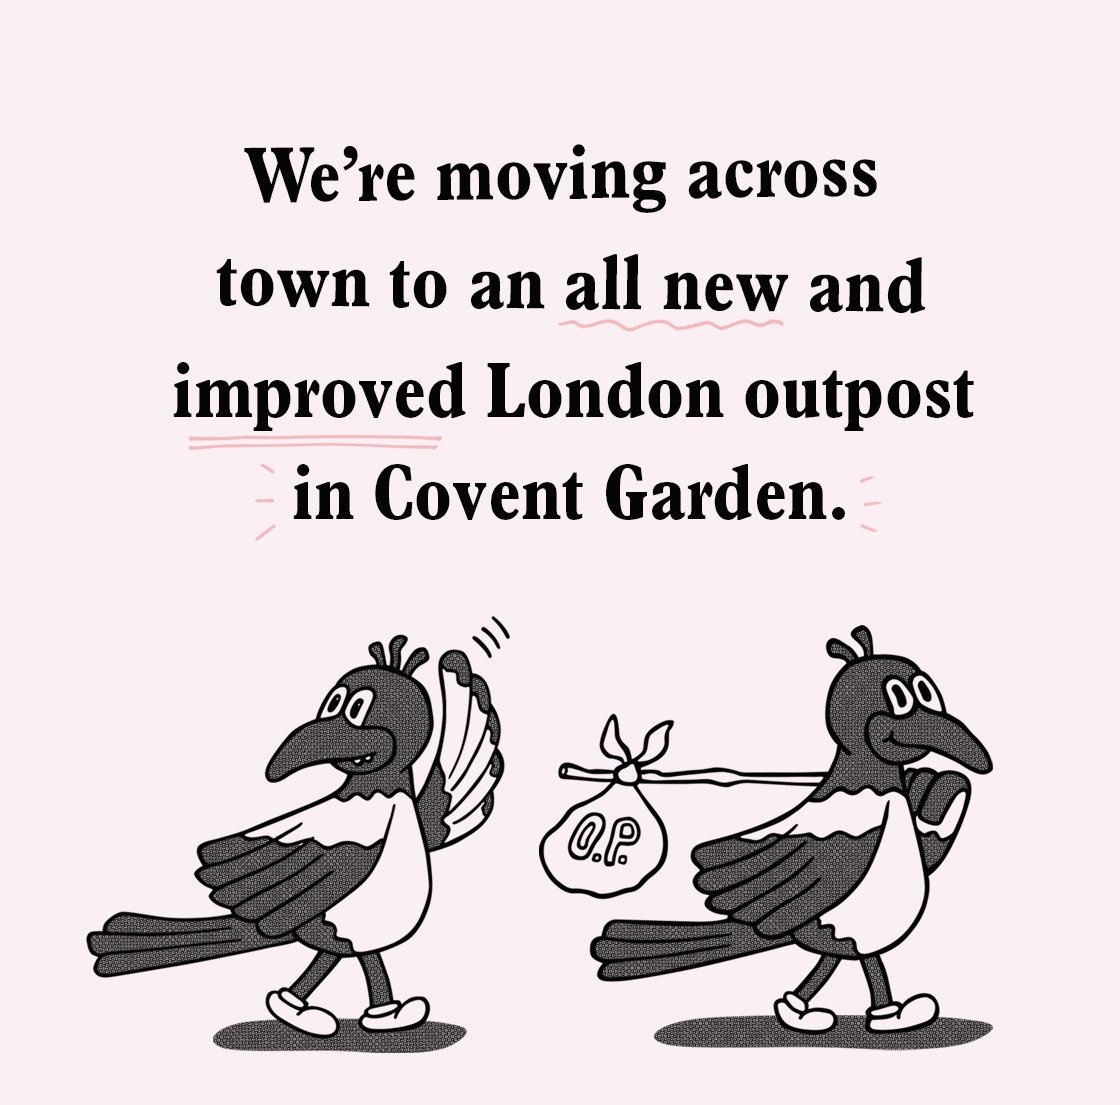 Our London shop is moving